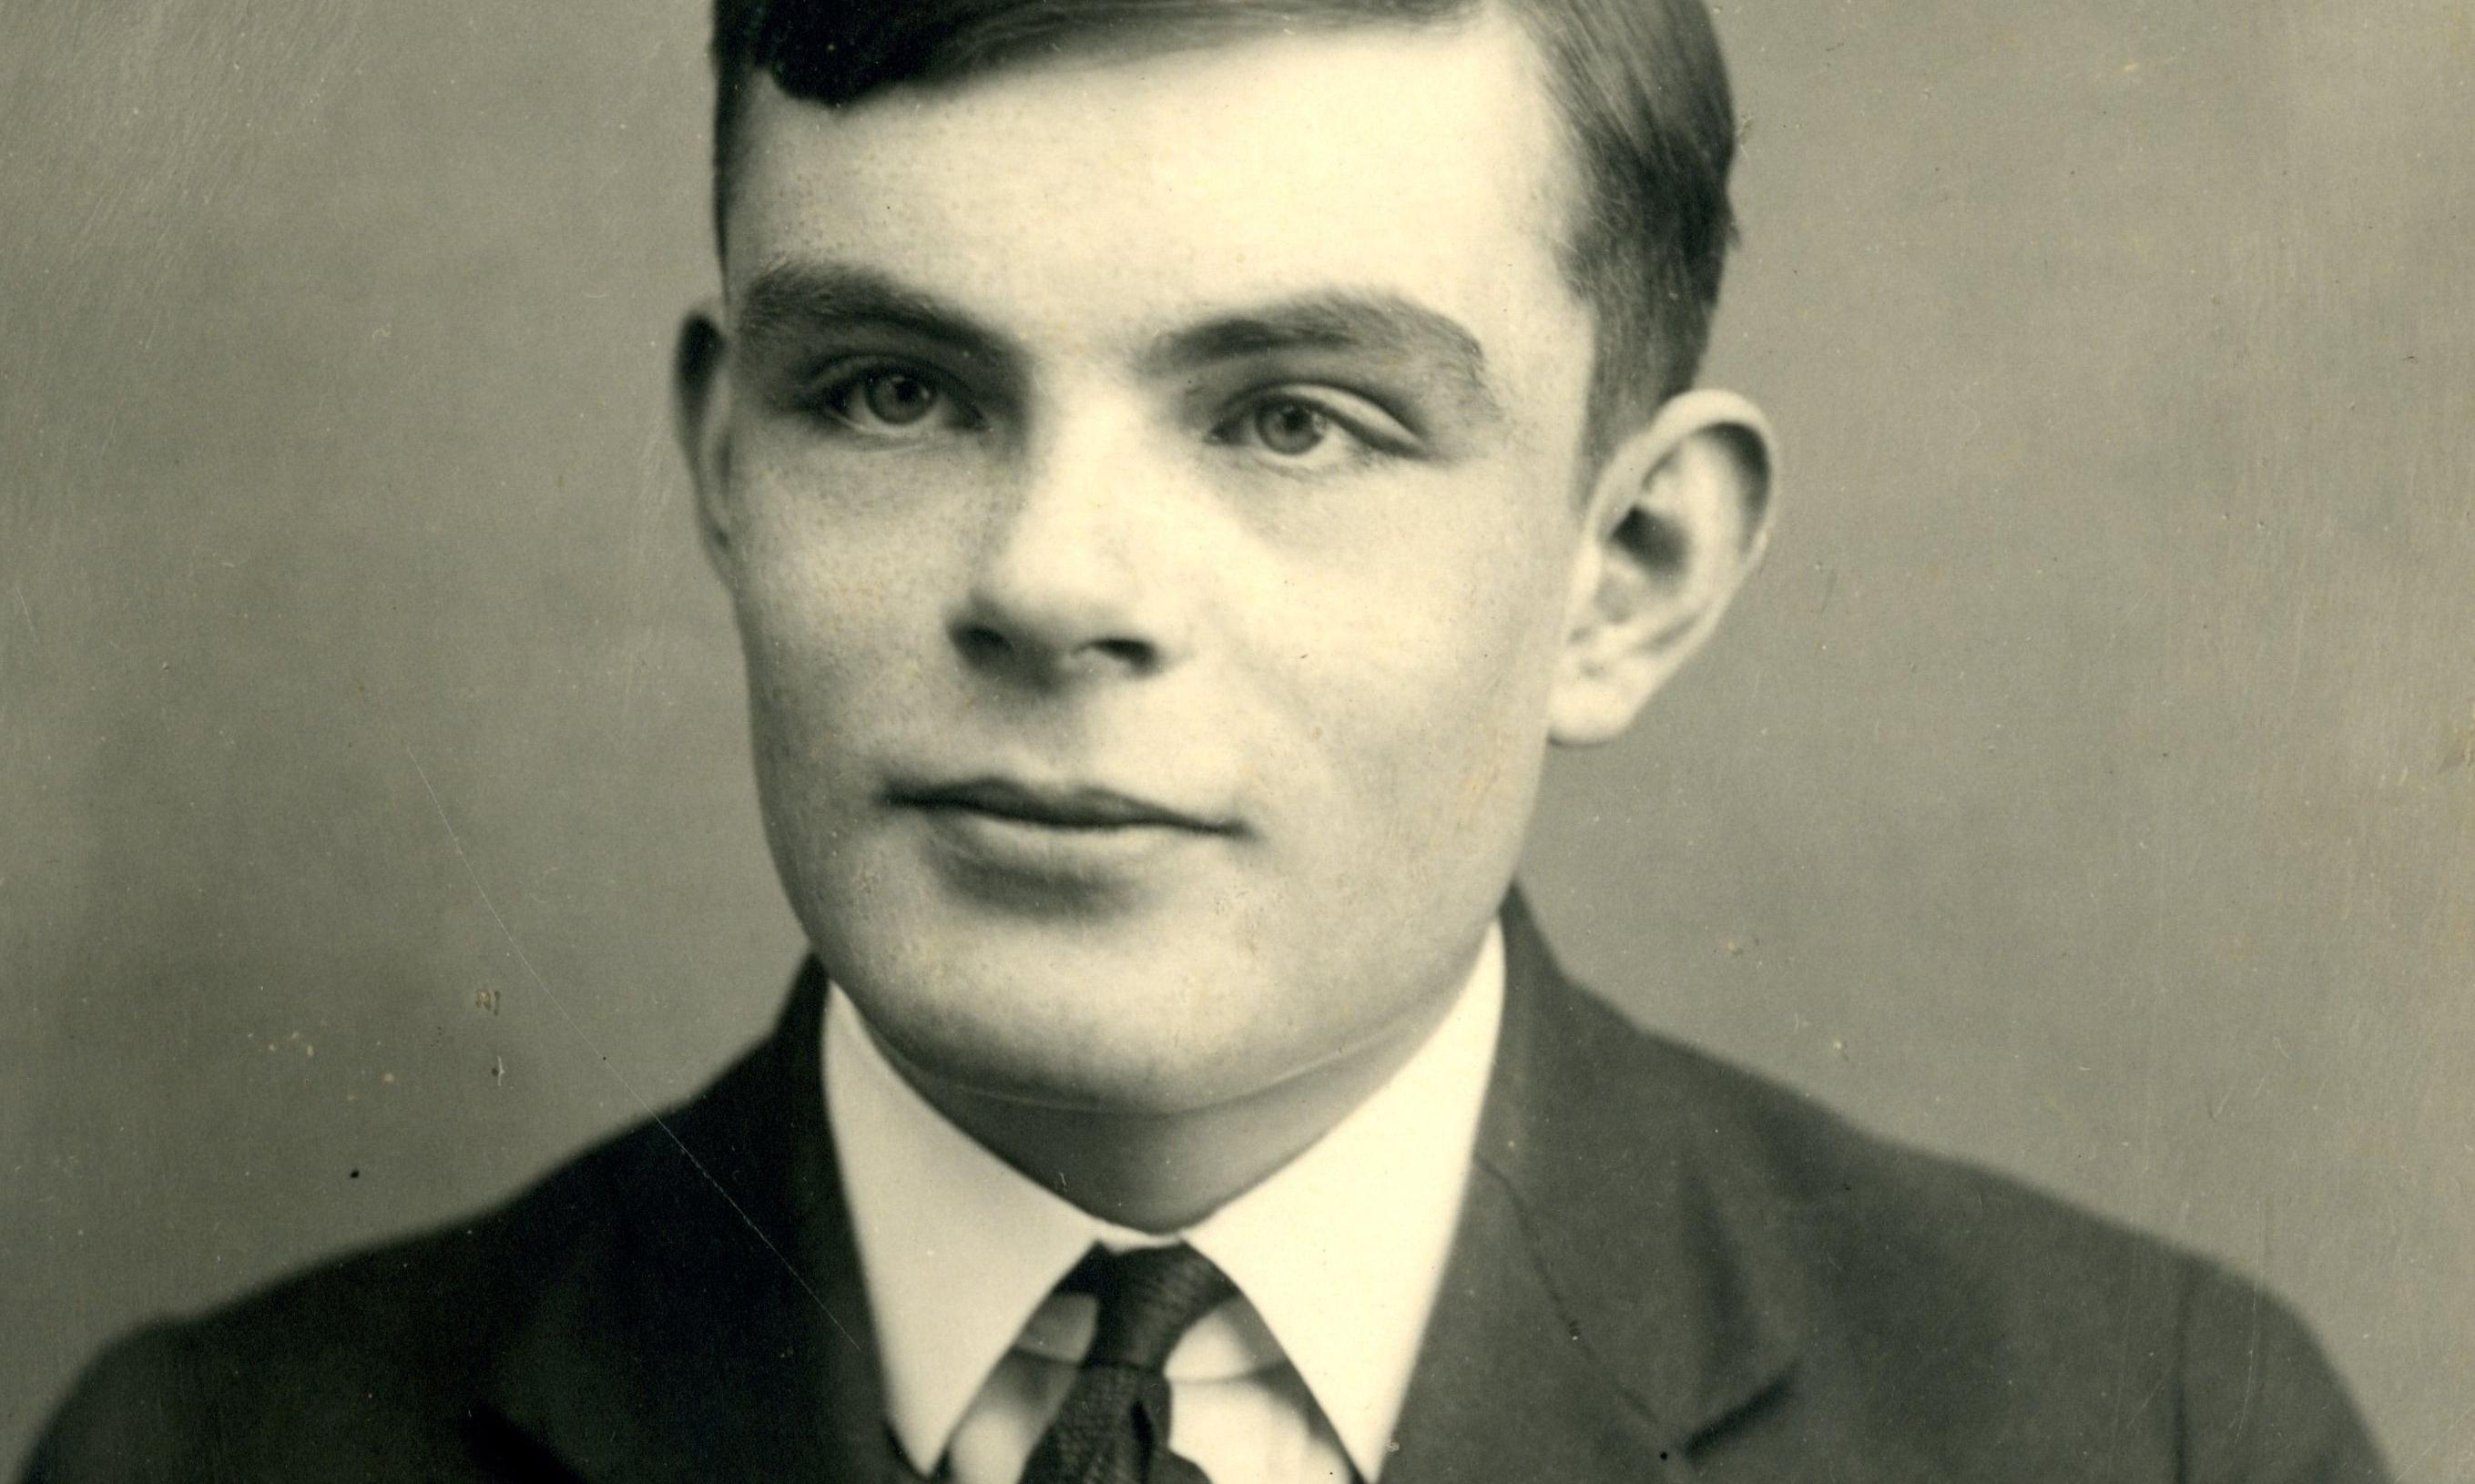 The father of modern computing: Alan Turing's legacy